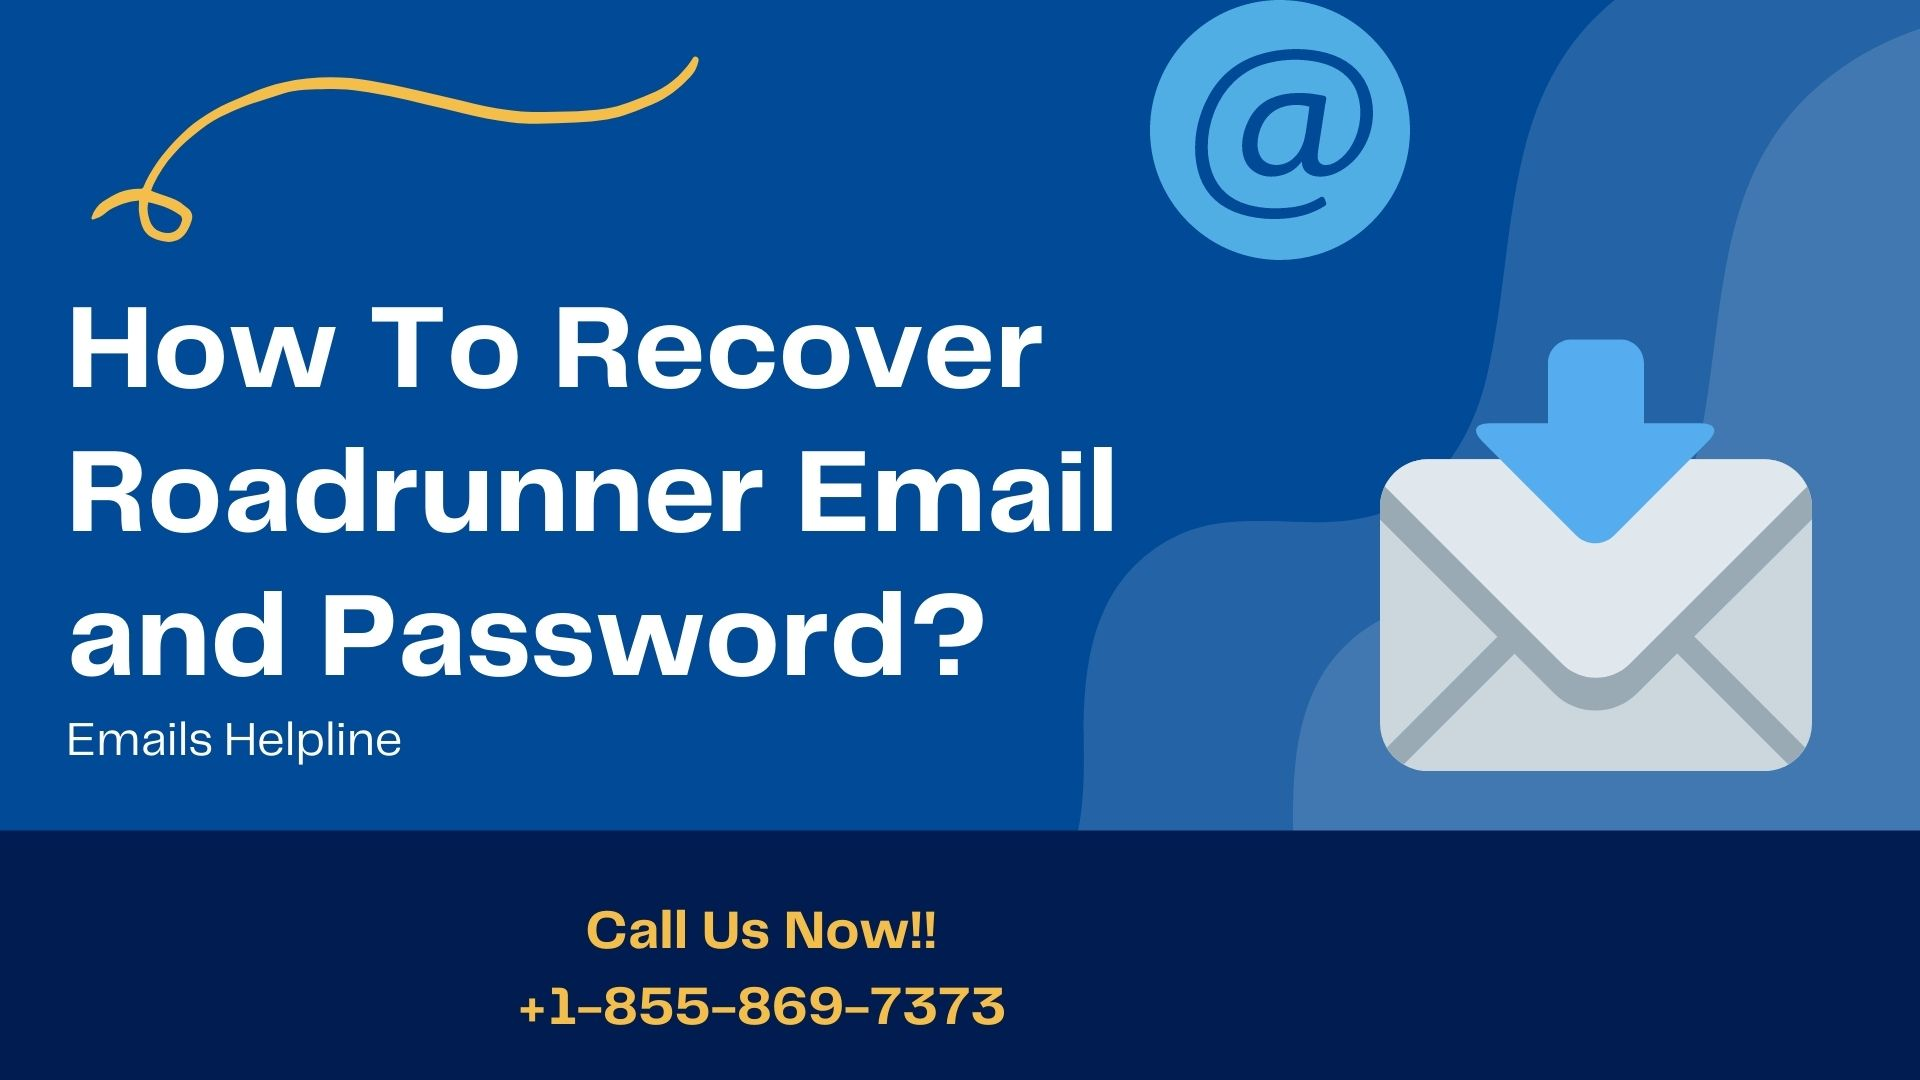 How To Recover Roadrunner Email and Password Quick Solution